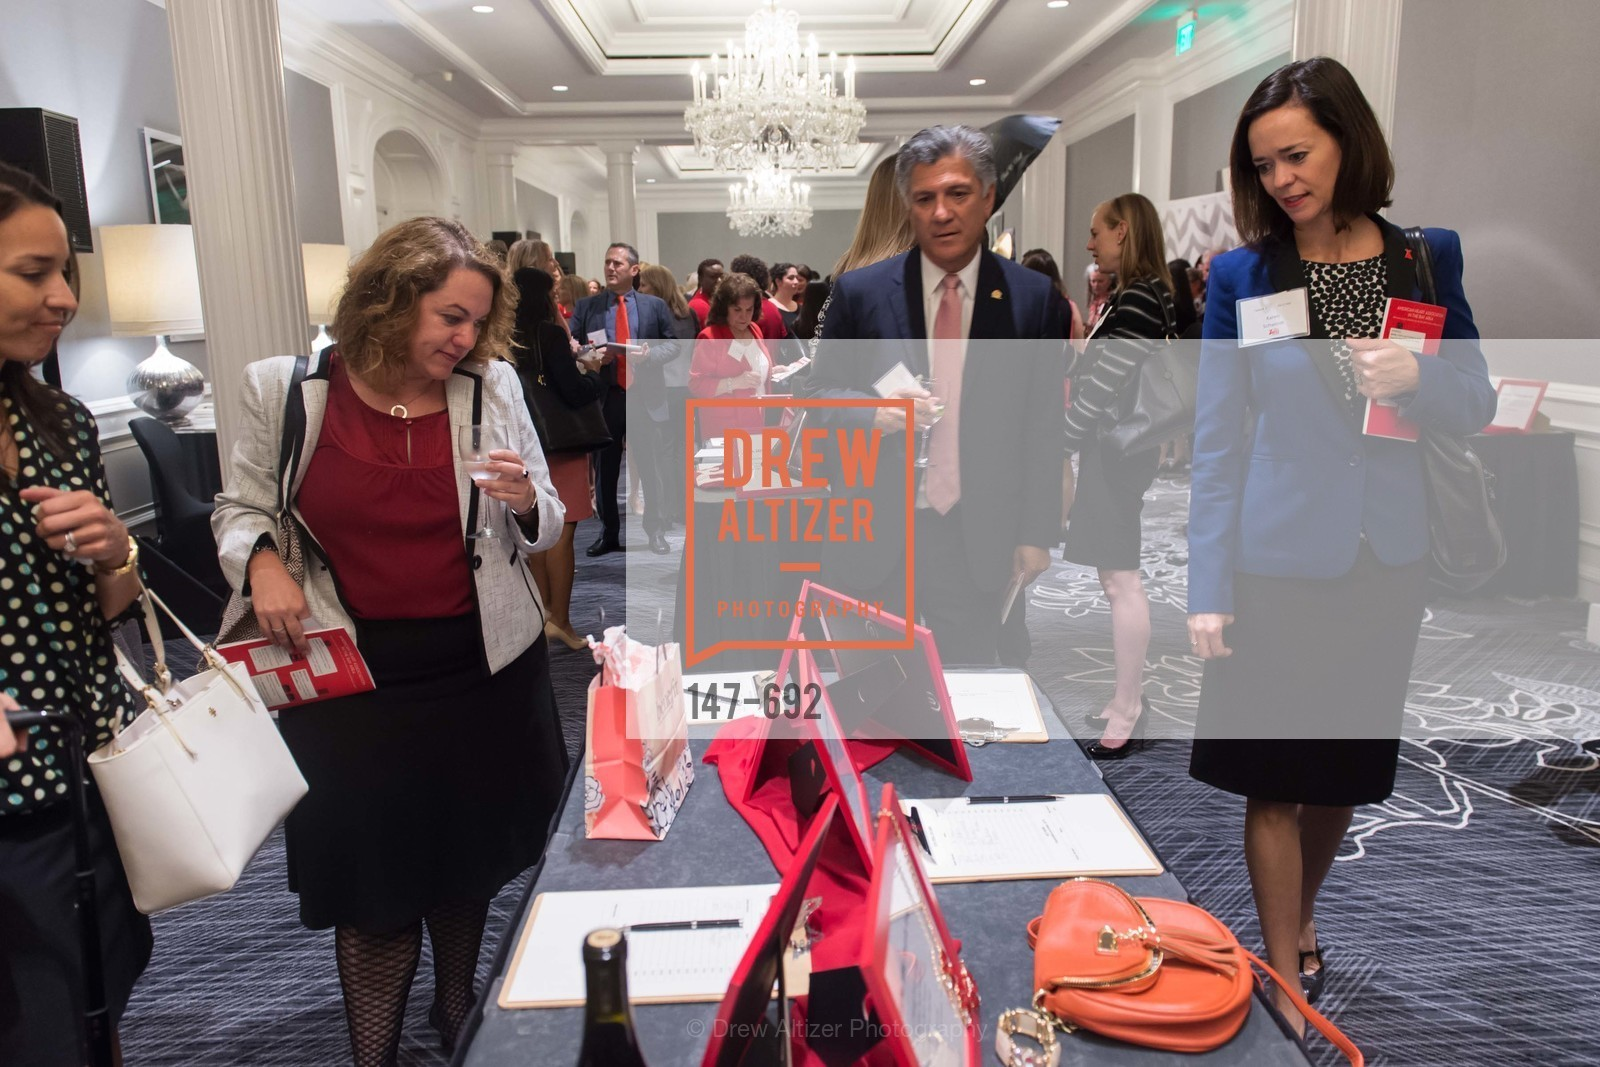 Mario Diaz, Karen Schwindt, 2015 GoRed for Women Luncheon, US, May 2nd, 2015,Drew Altizer, Drew Altizer Photography, full-service agency, private events, San Francisco photographer, photographer california